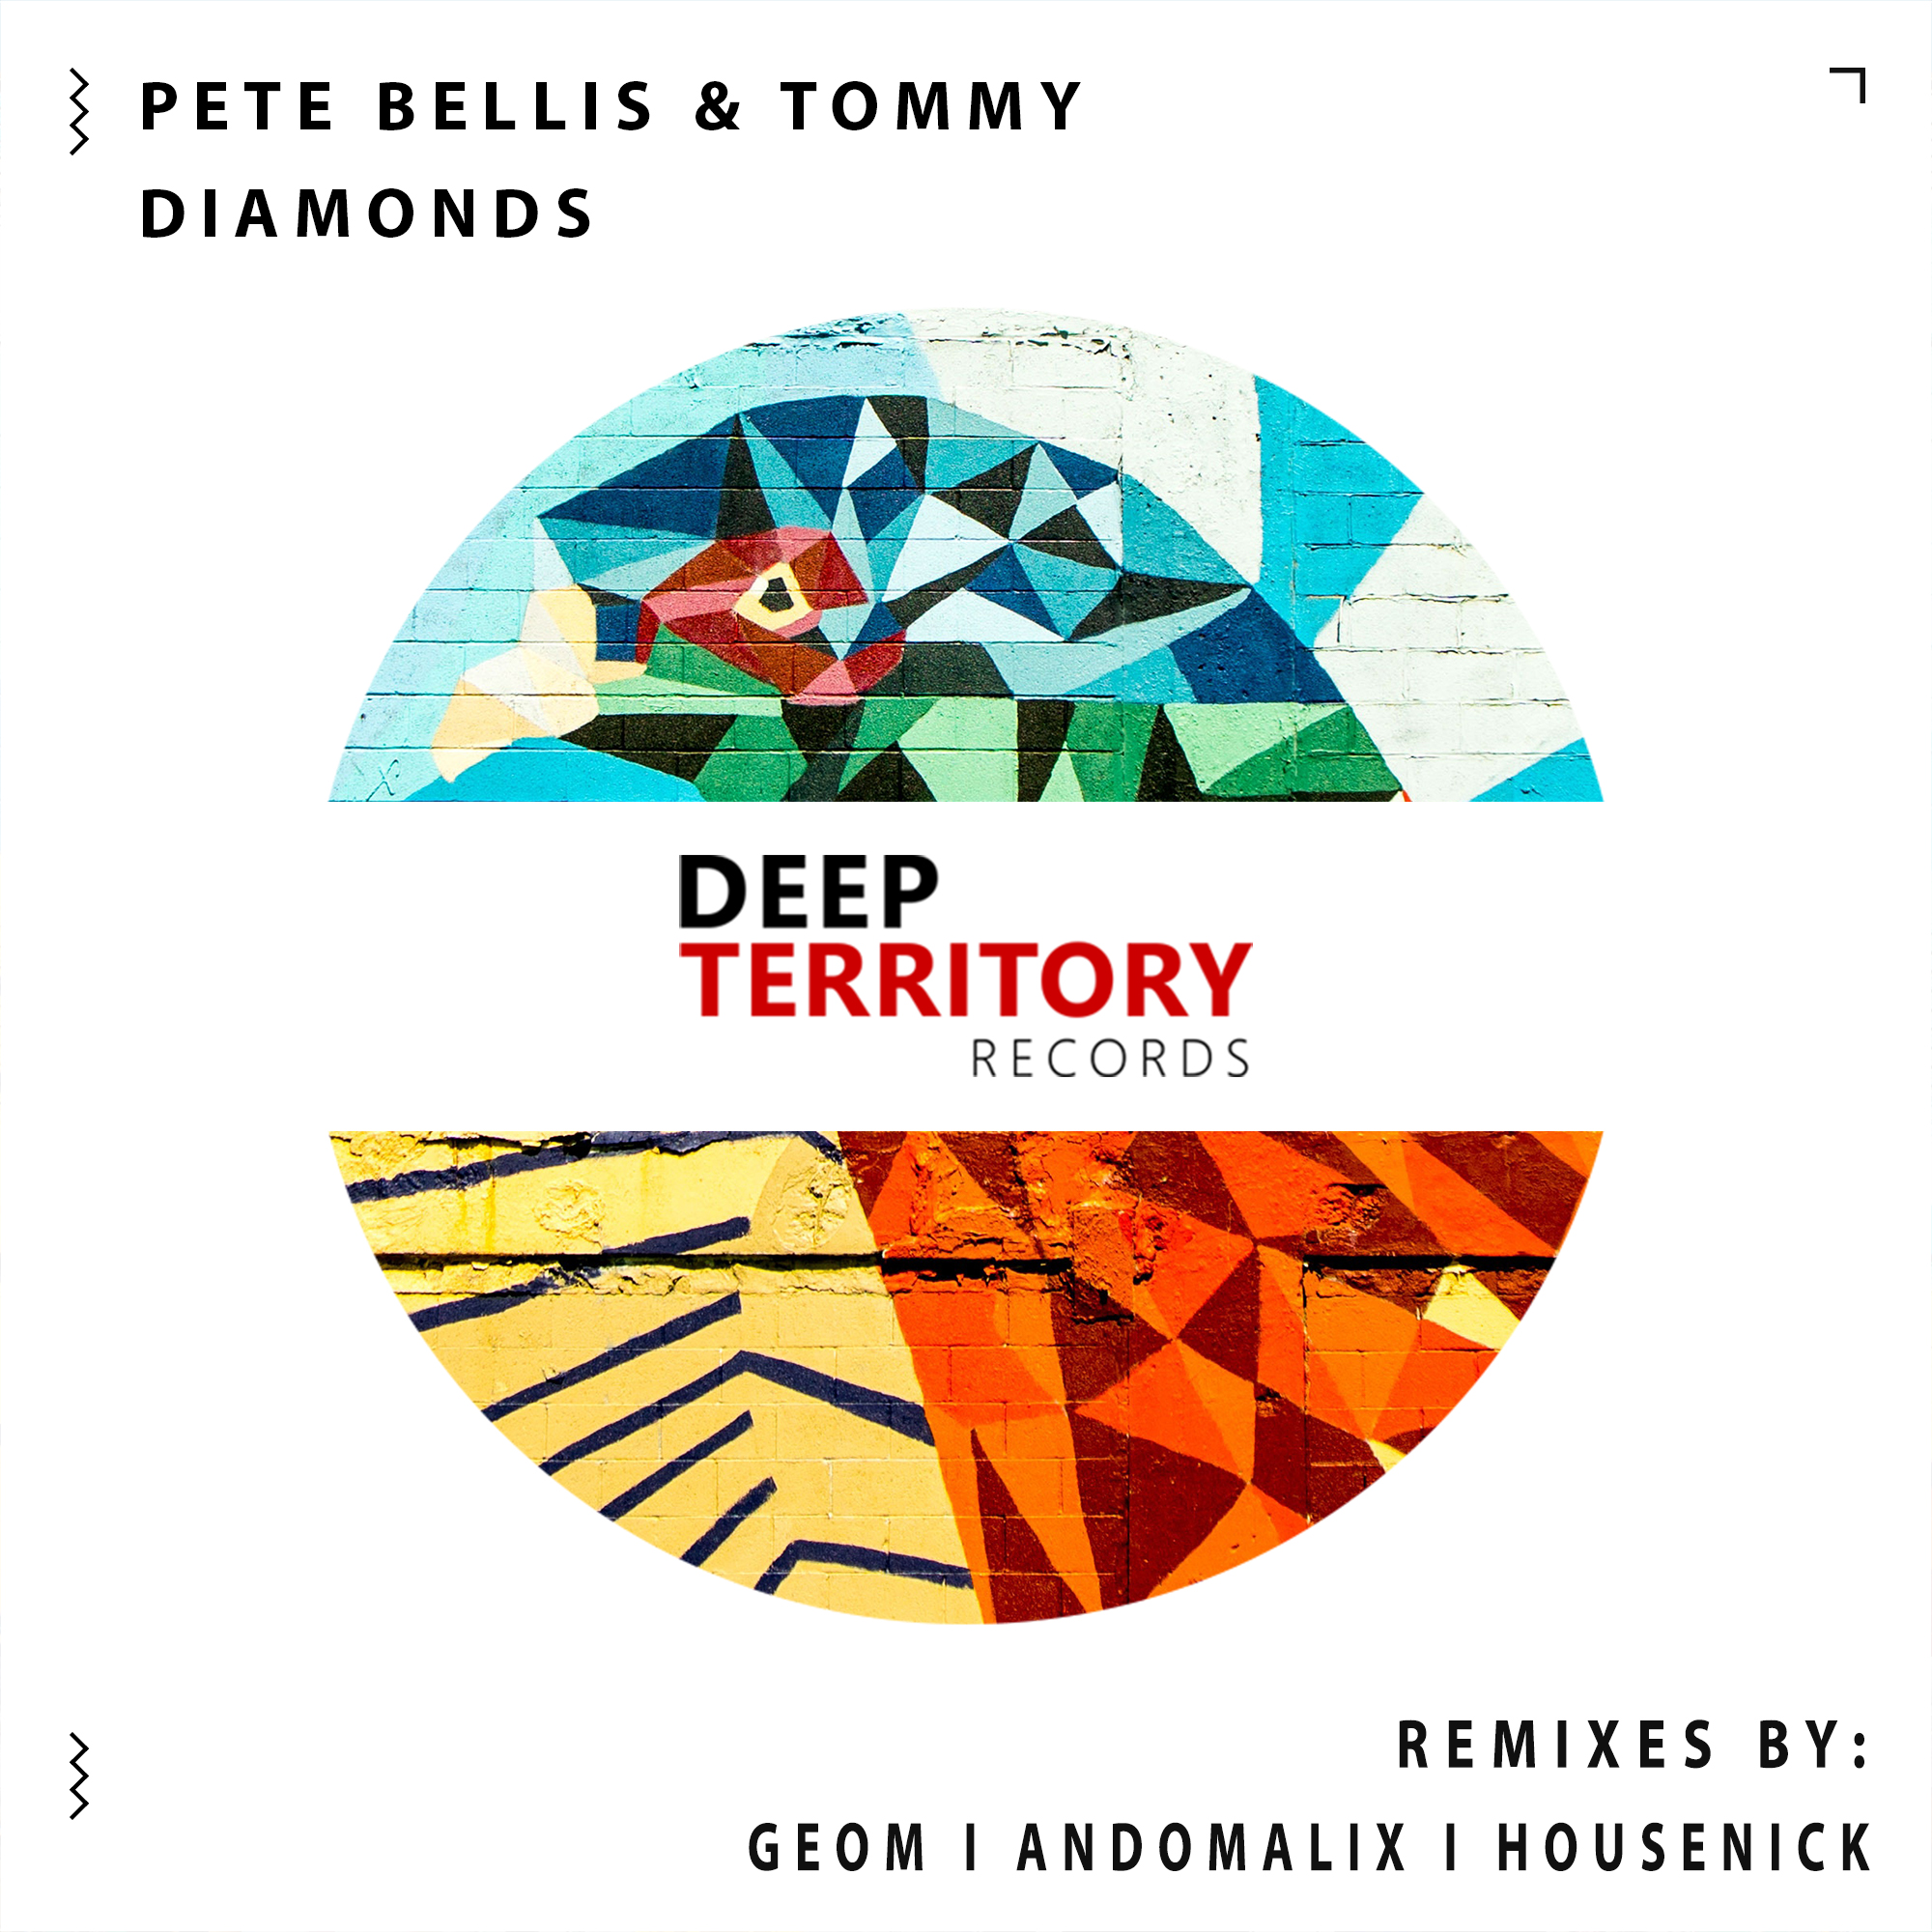 Pete Bellis & Tommy Diamonds